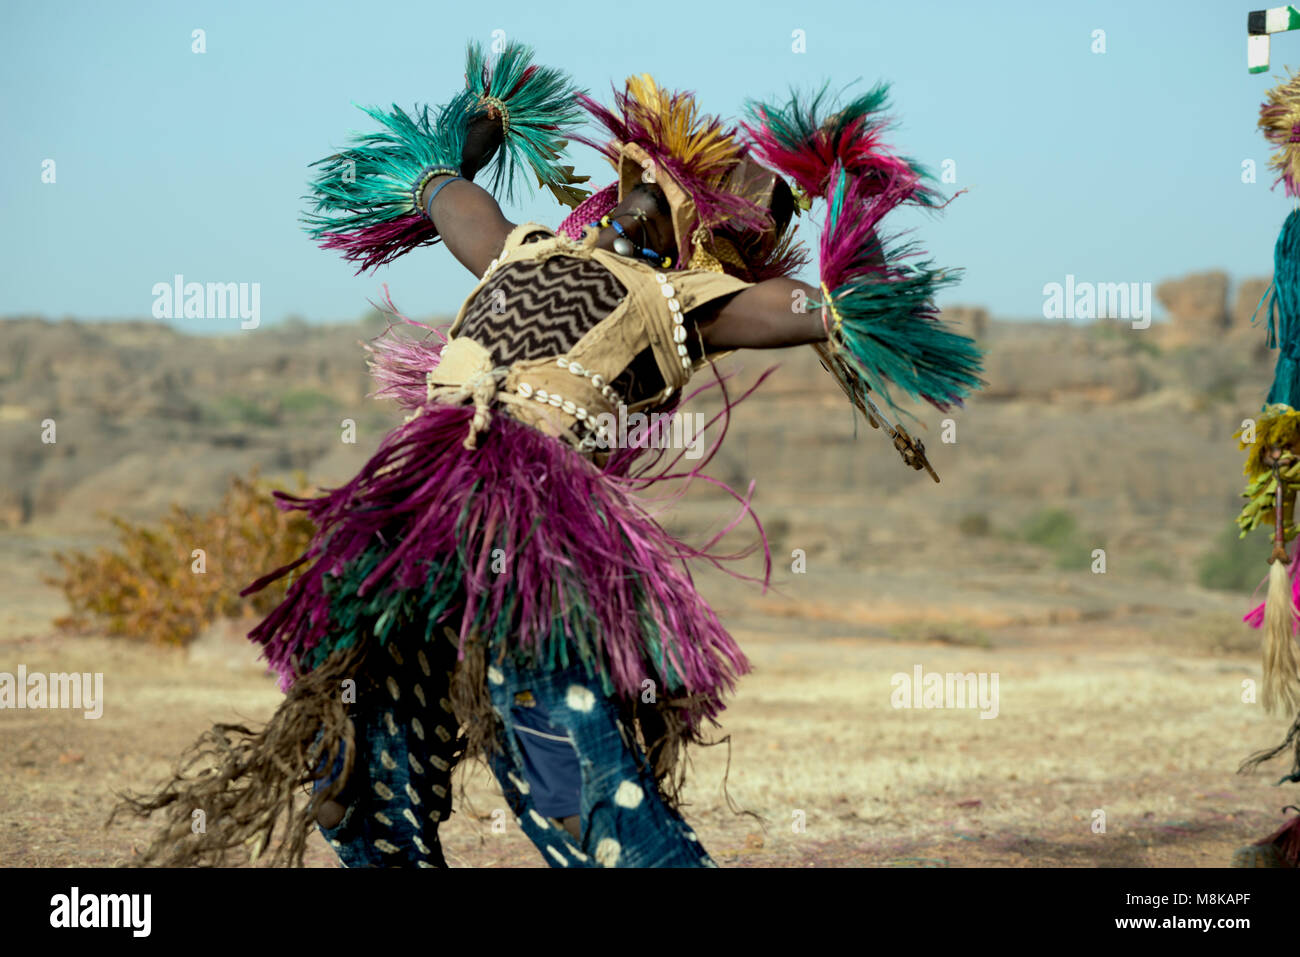 A Dogon masked dancer leaning backwards during a traditional tribal dance. Dogon country, Mali, West Africa. - Stock Image